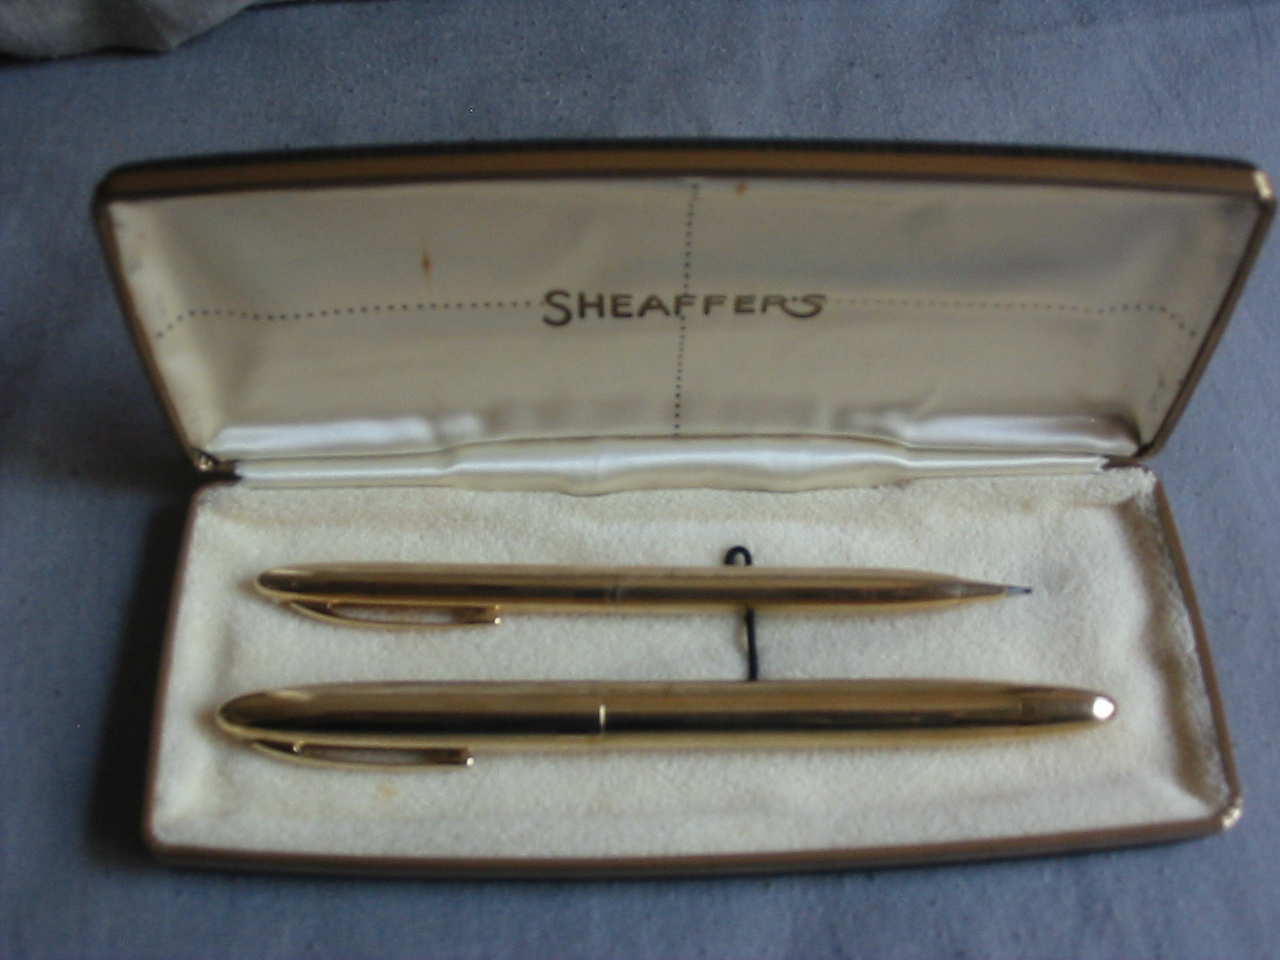 sheaffer_5.JPG